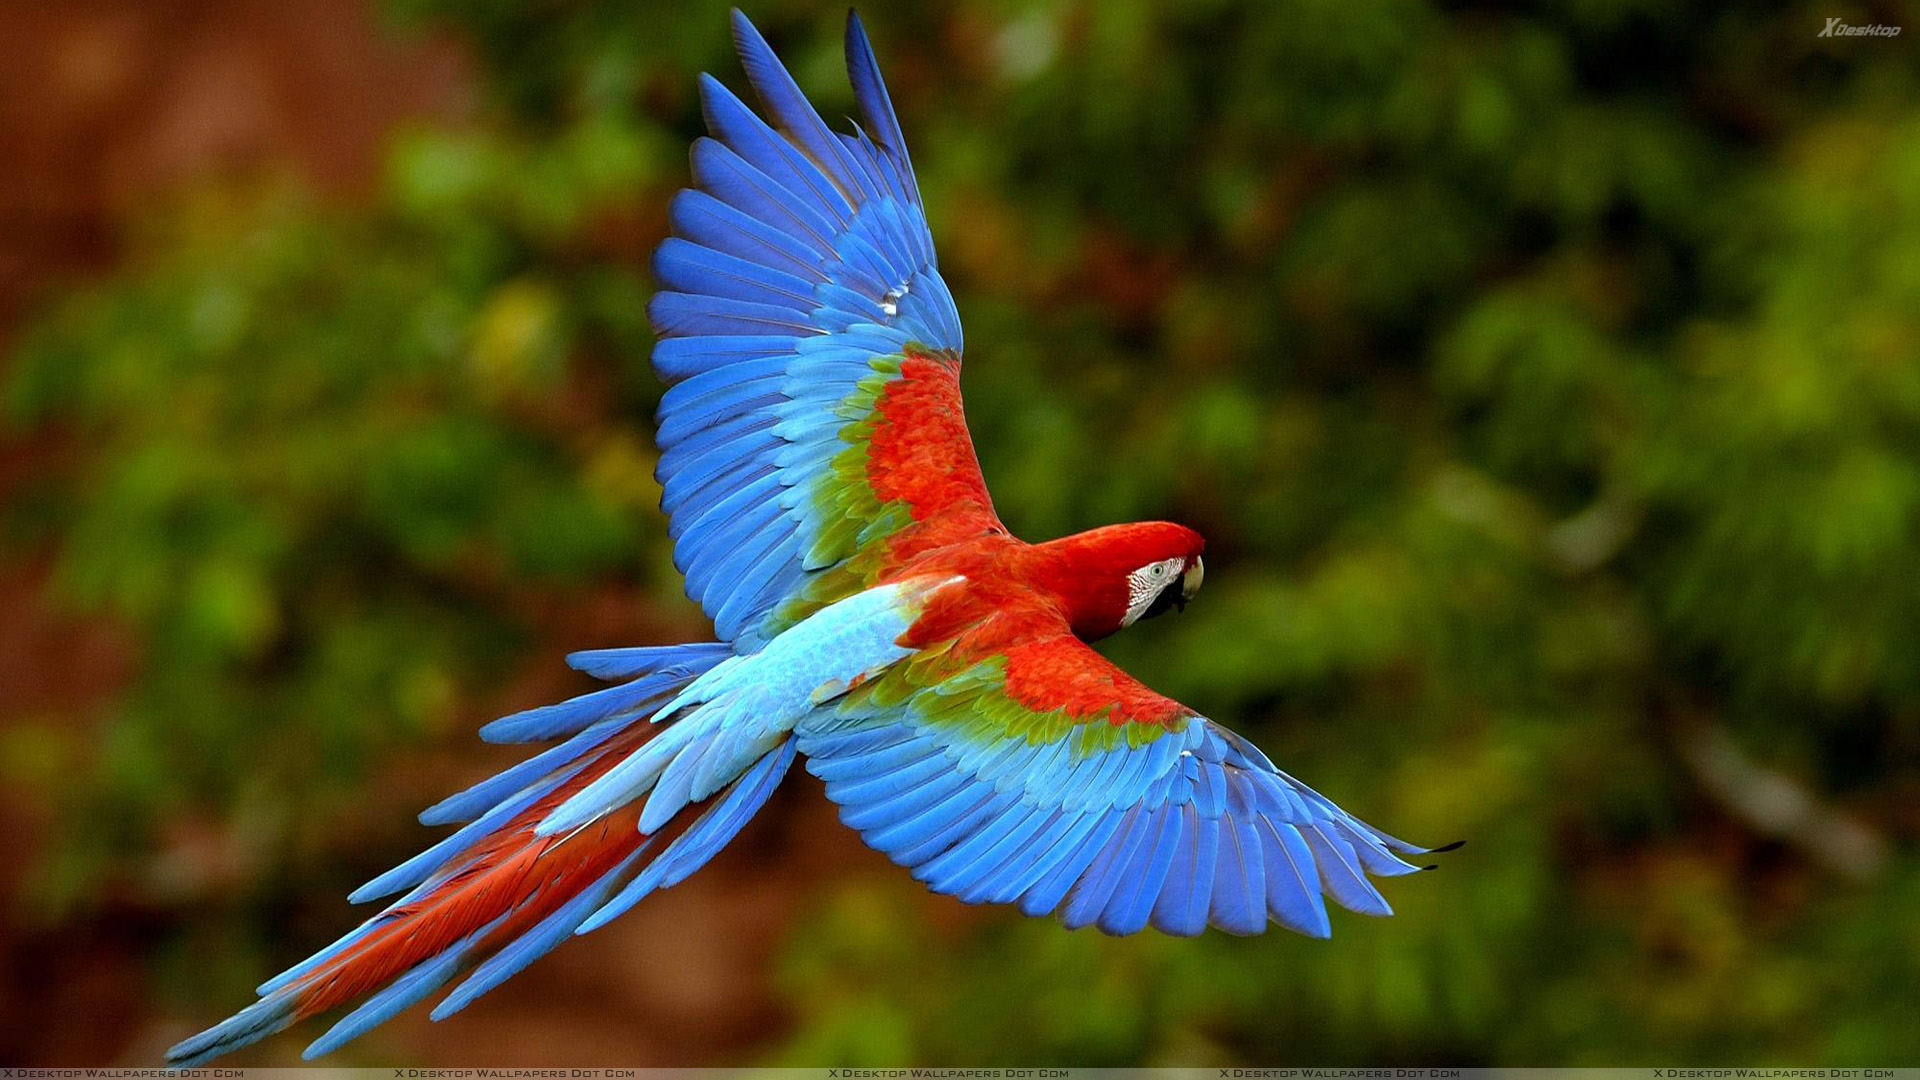 Flying Birds Wallpapers Photos Images in HD 1920x1080